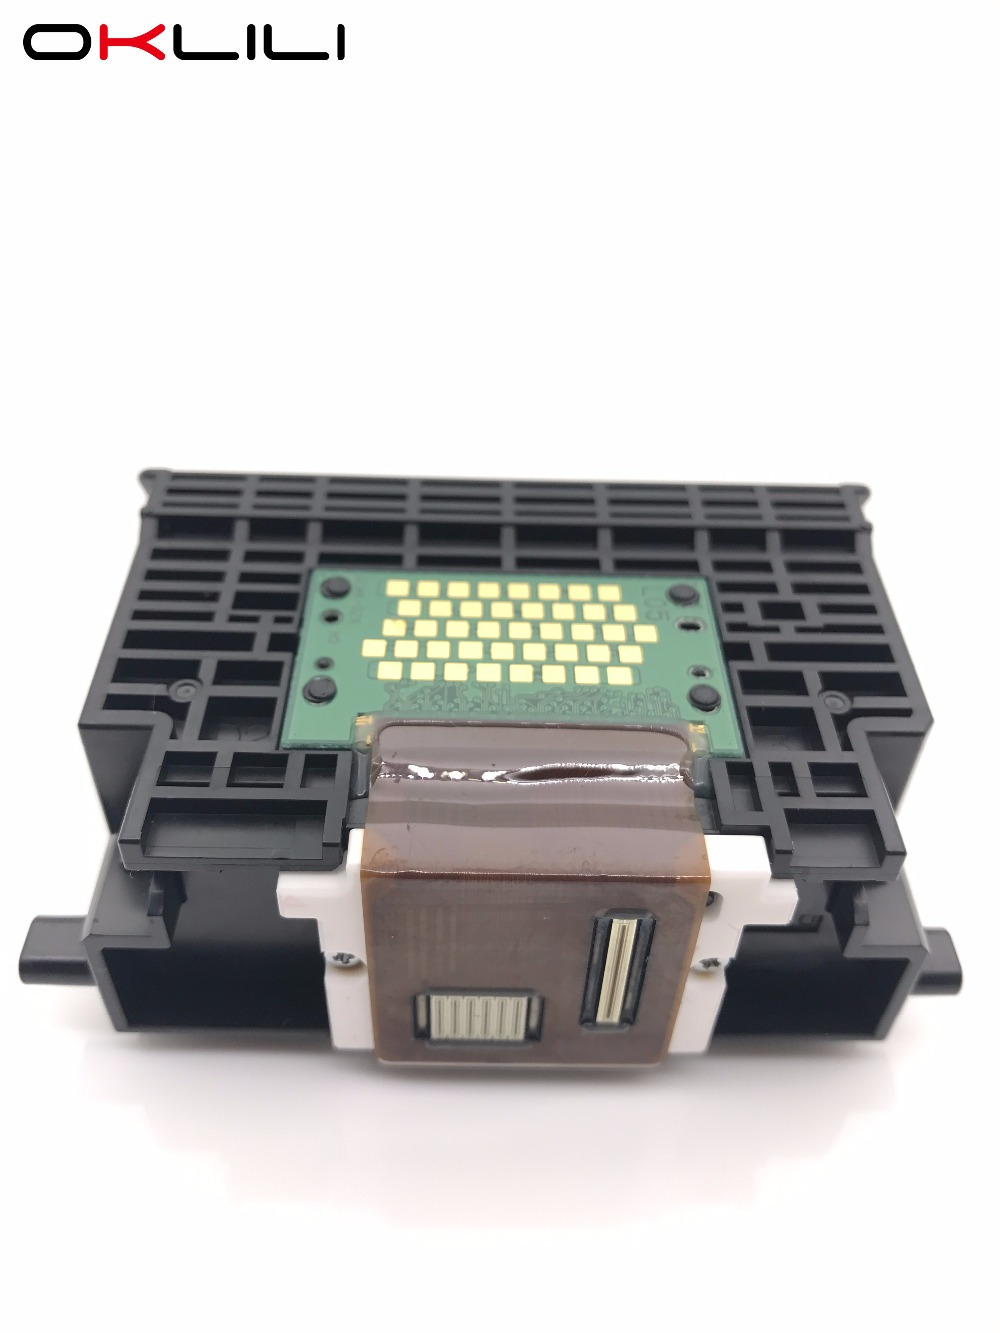 OKLILI ORIGINAL QY6-0059 QY6-0059-000 Printhead Print Head Printer Head for Canon iP4200 MP500 MP530 цена